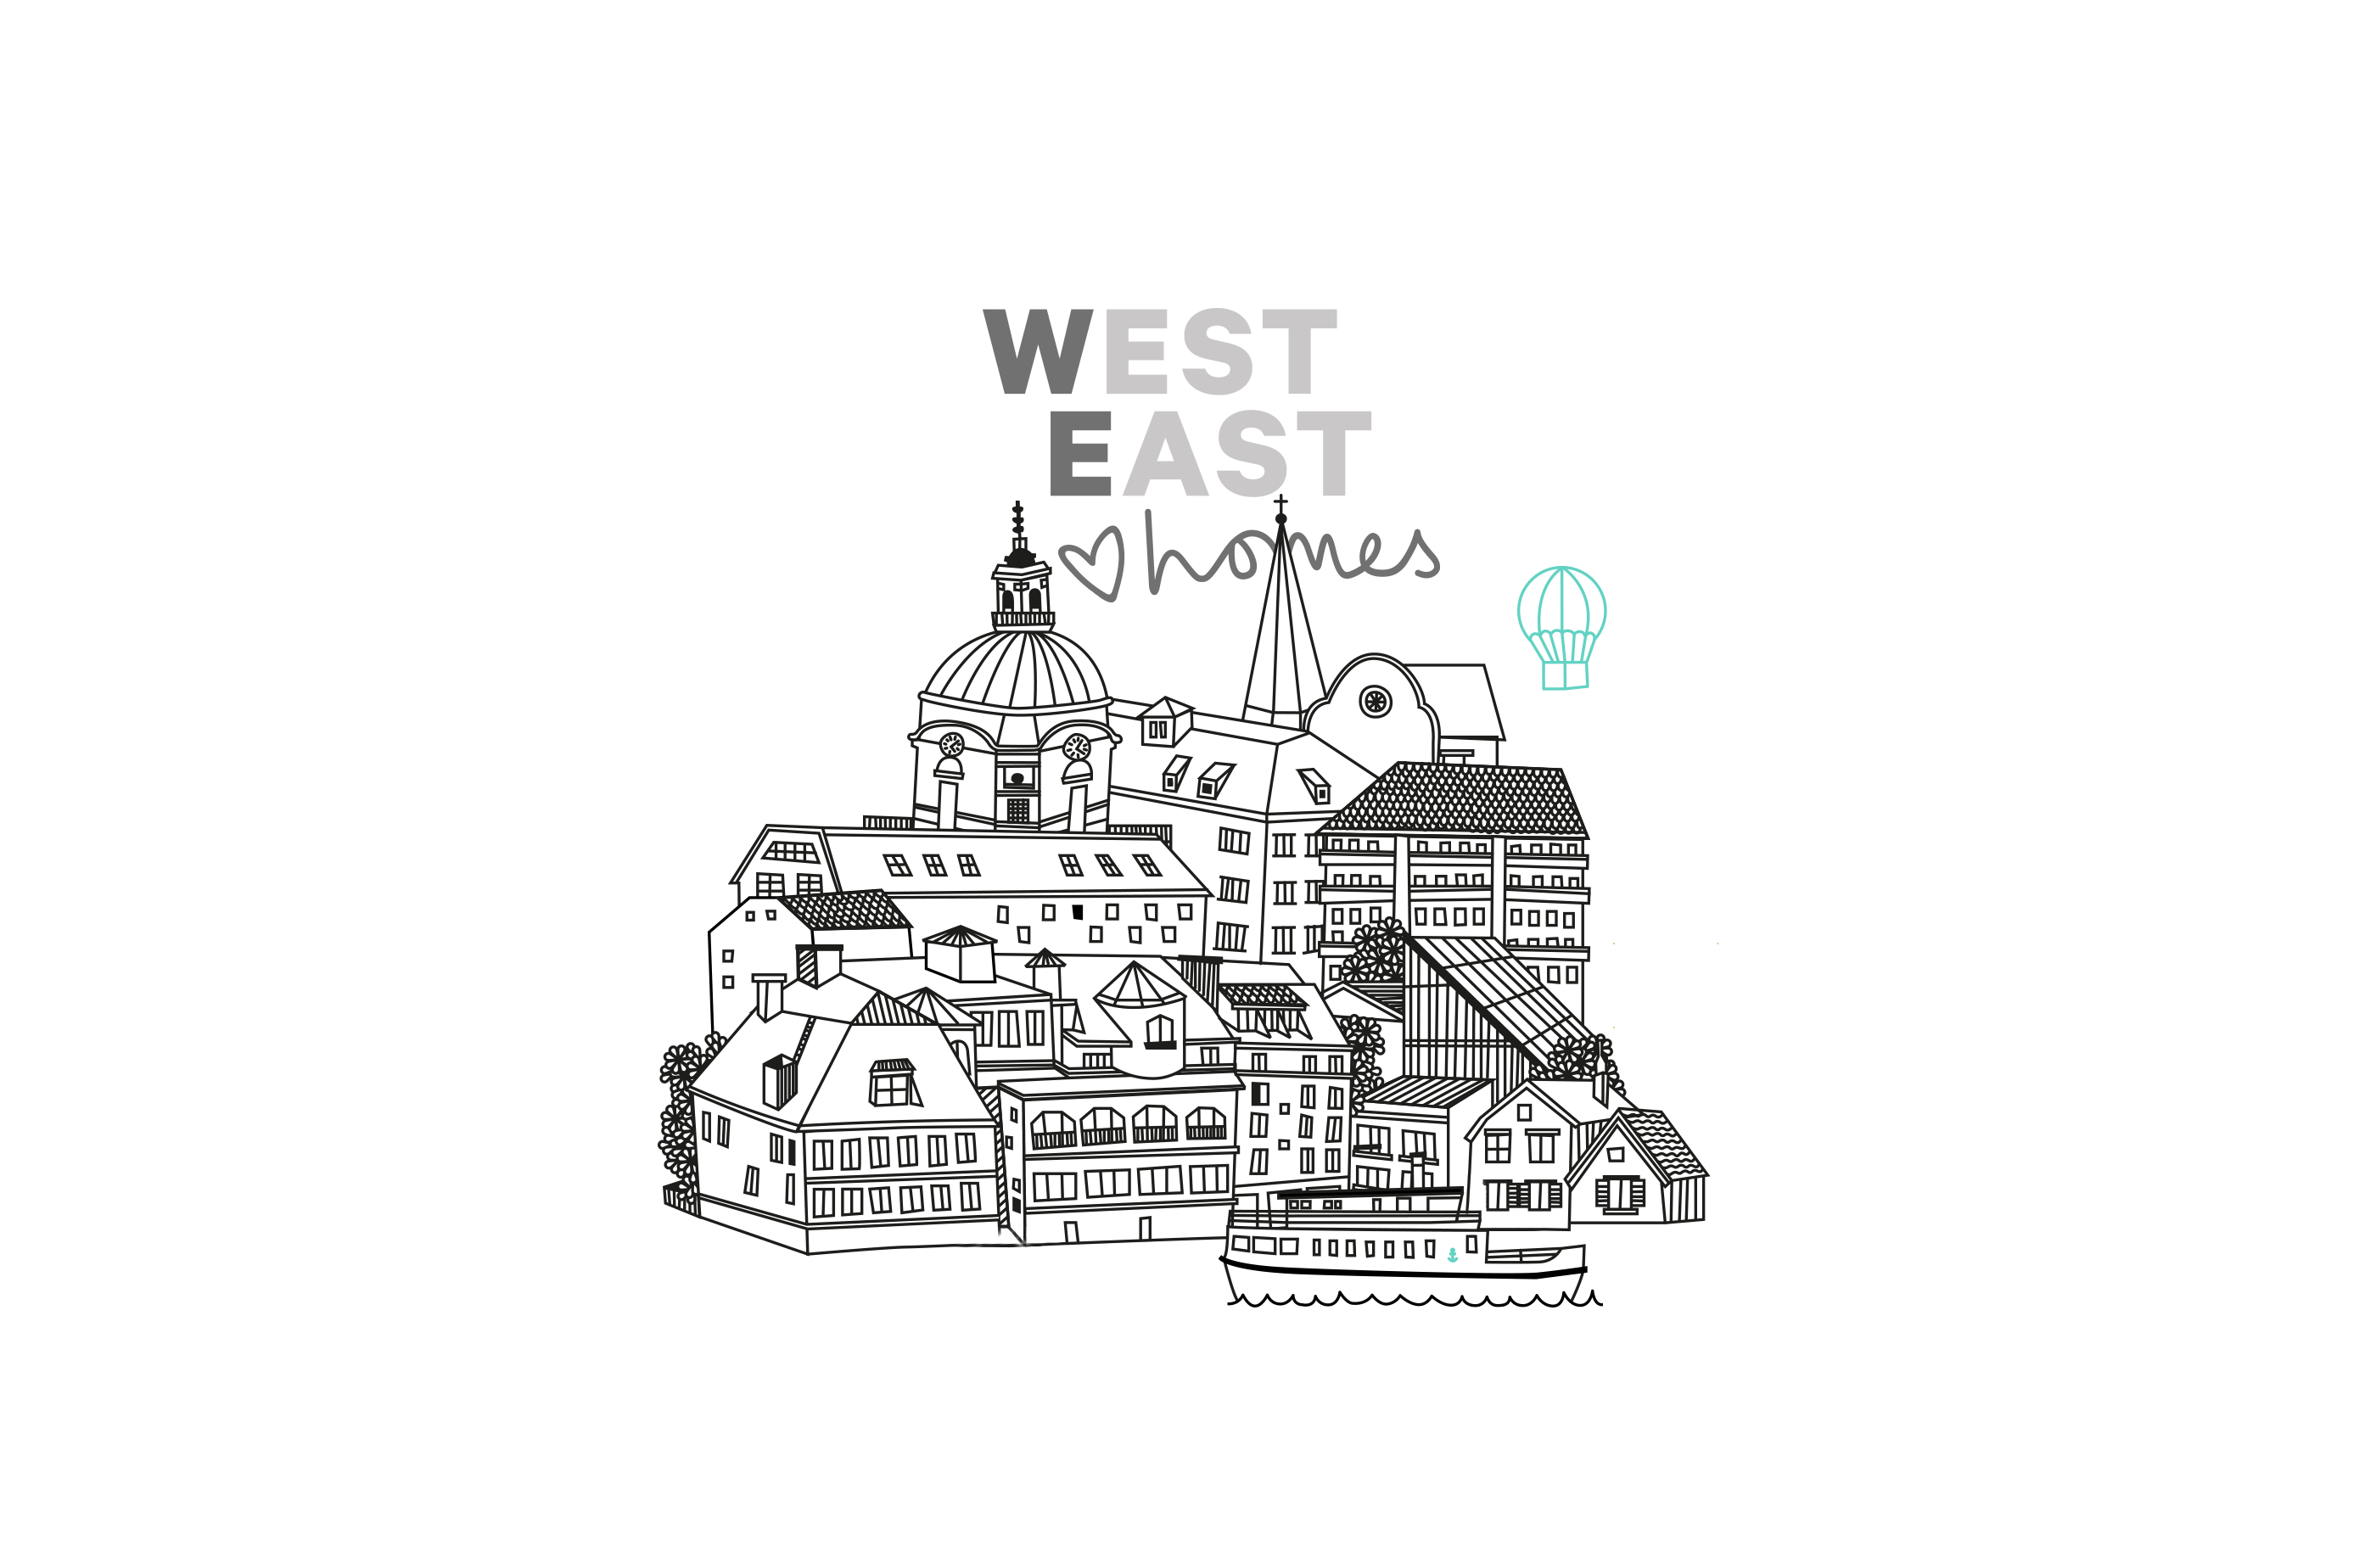 West East logo